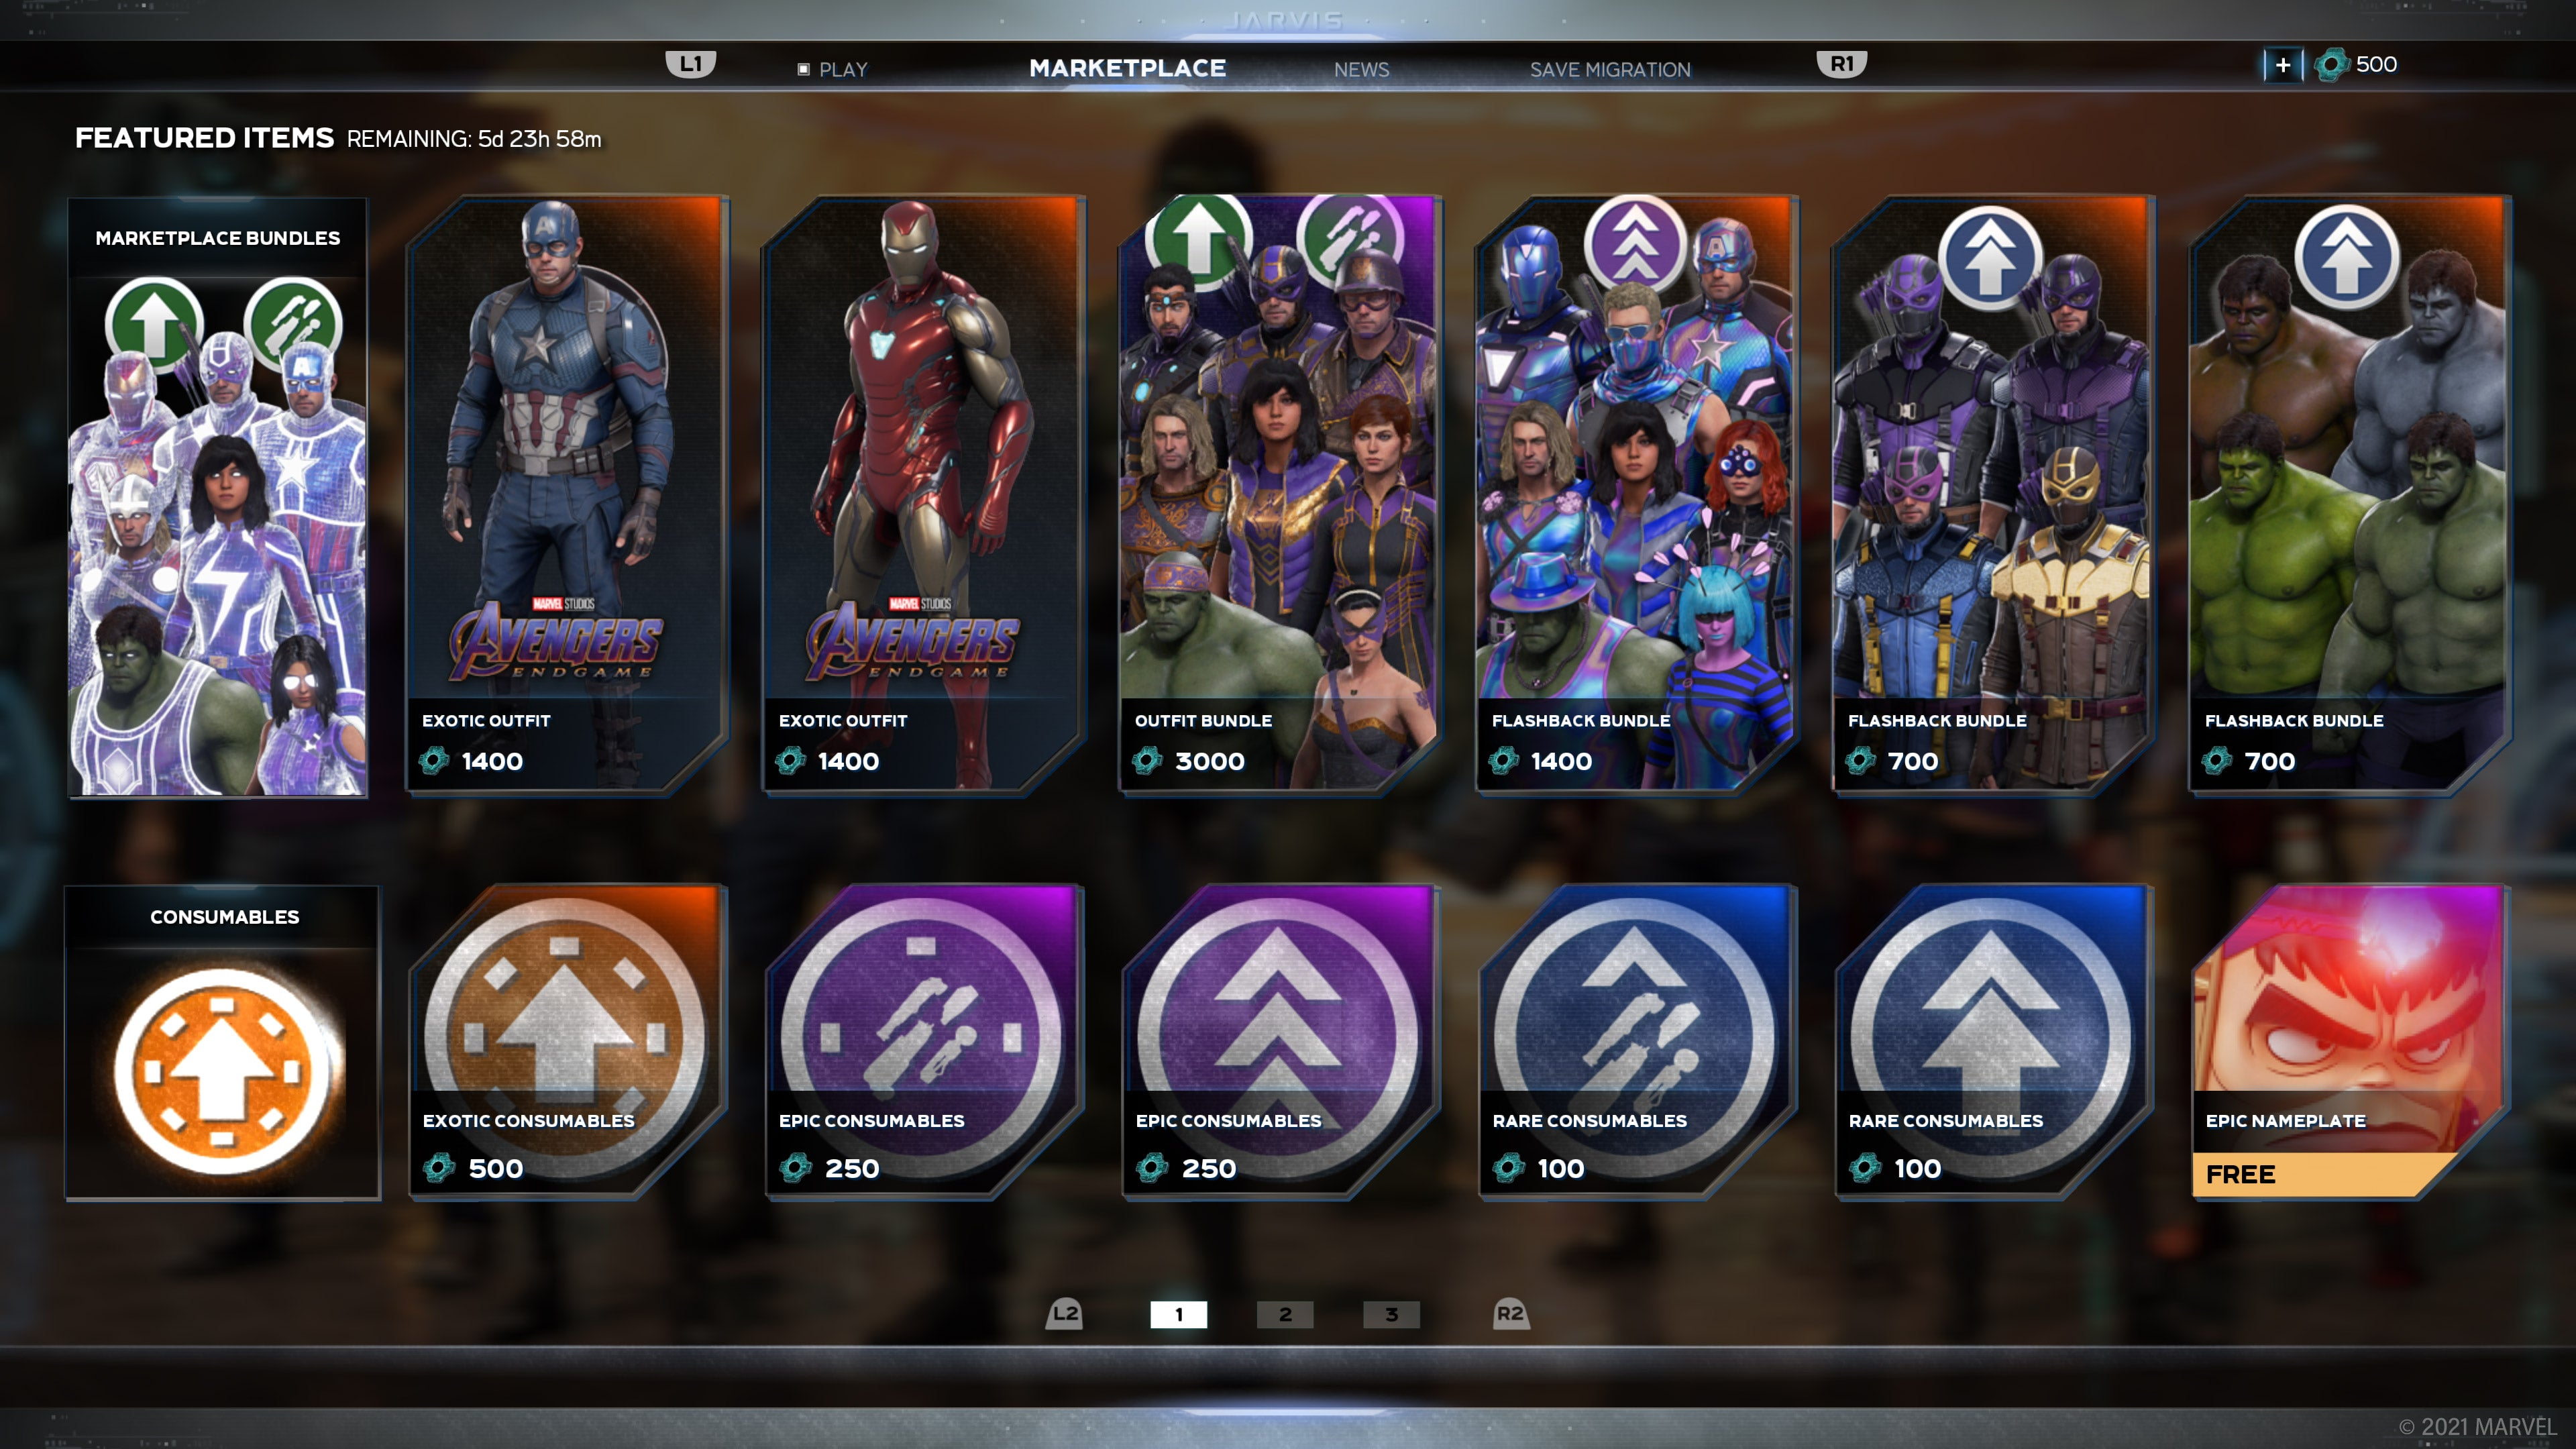 the Marvel's Avengers in-game Marketplace